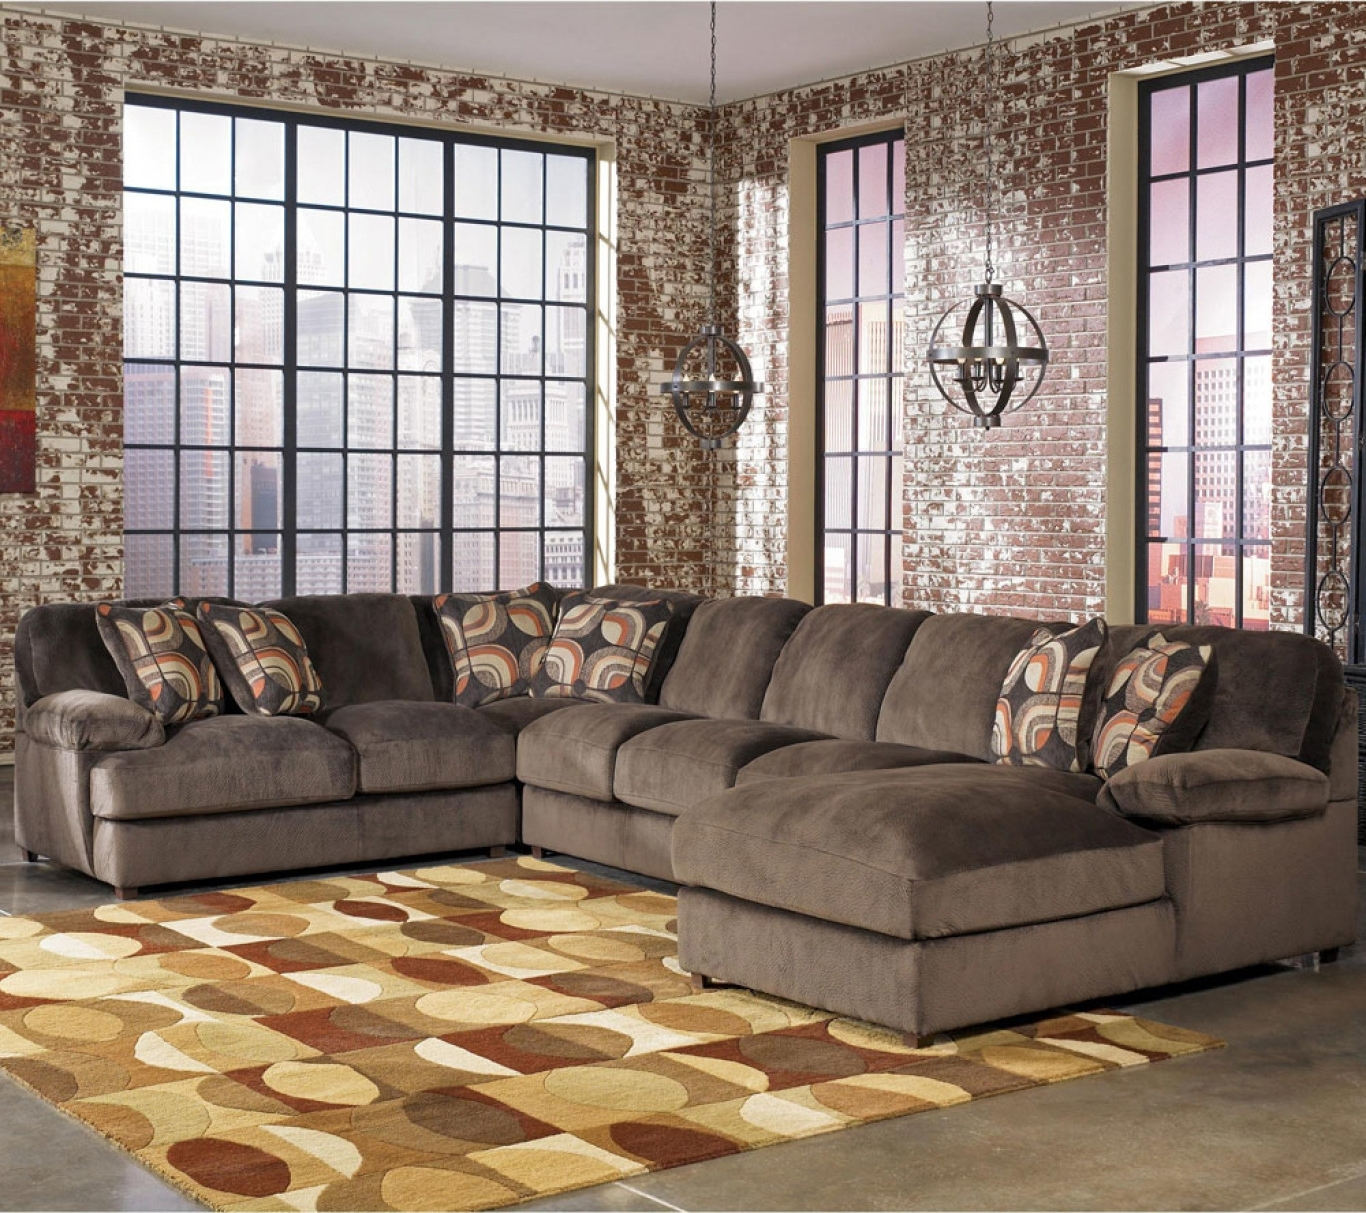 Attirant St Cloud Mn Sectional Sofas In Most Recent Hom Furniture St Cloud Mn  (Gallery 1